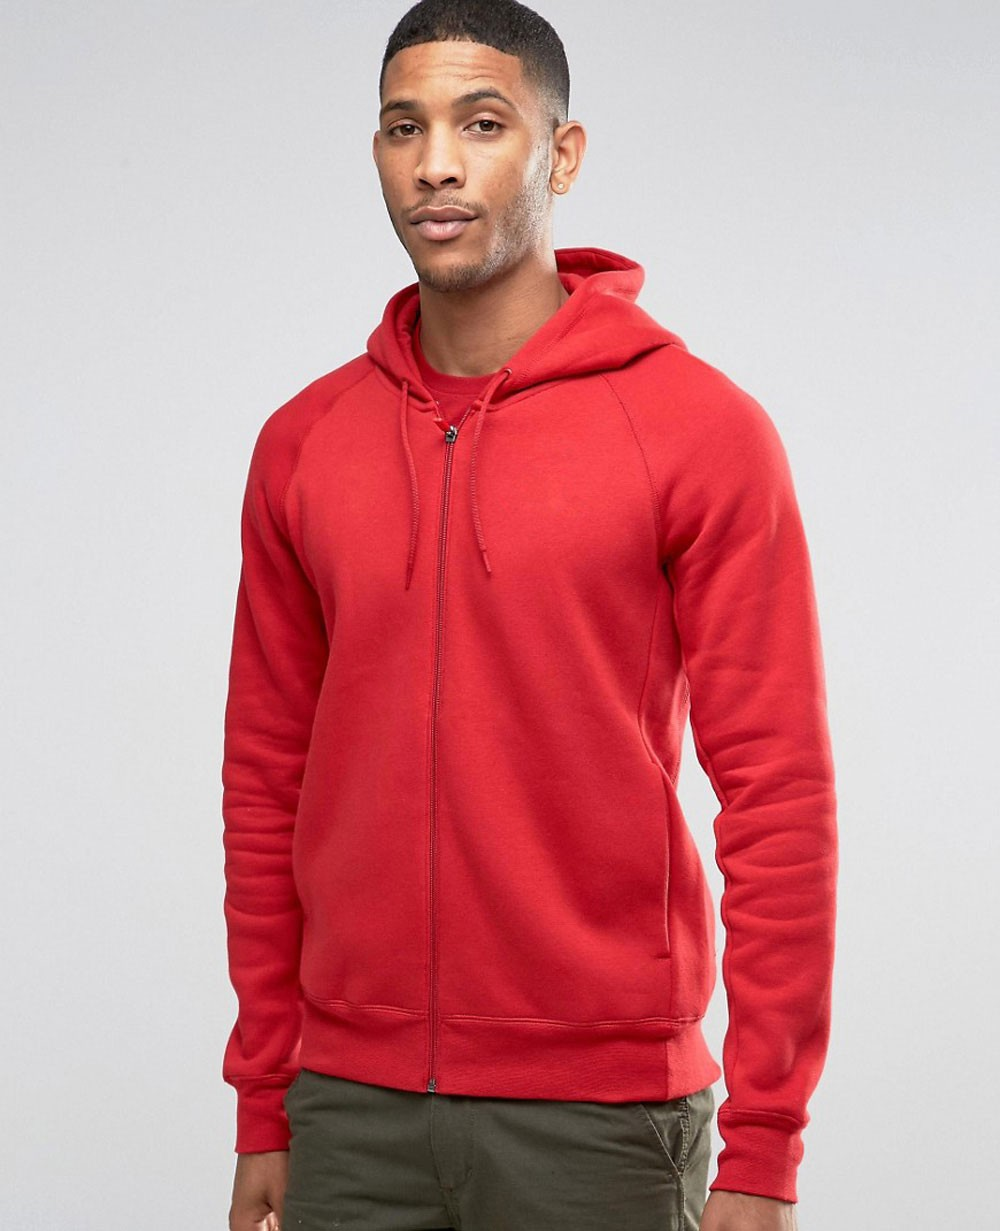 Stylish Pullover Hoodie In Red